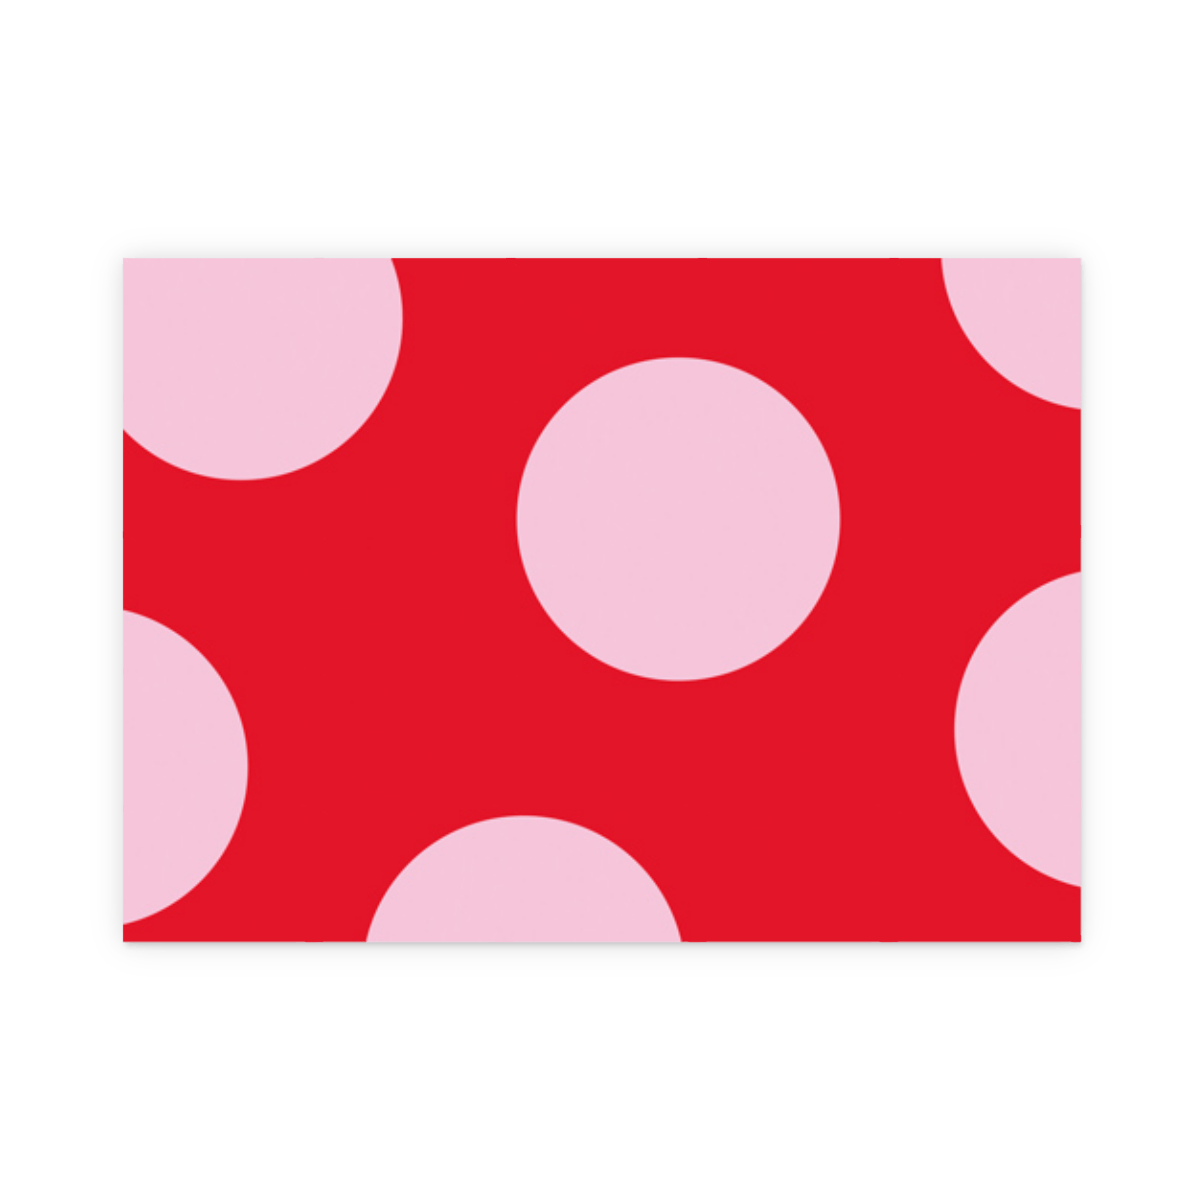 Https%3a%2f%2fwww.papier.com%2fproduct image%2f41022%2f42%2ff king pink polka dots 10392 back 1530786443.png?ixlib=rb 1.1